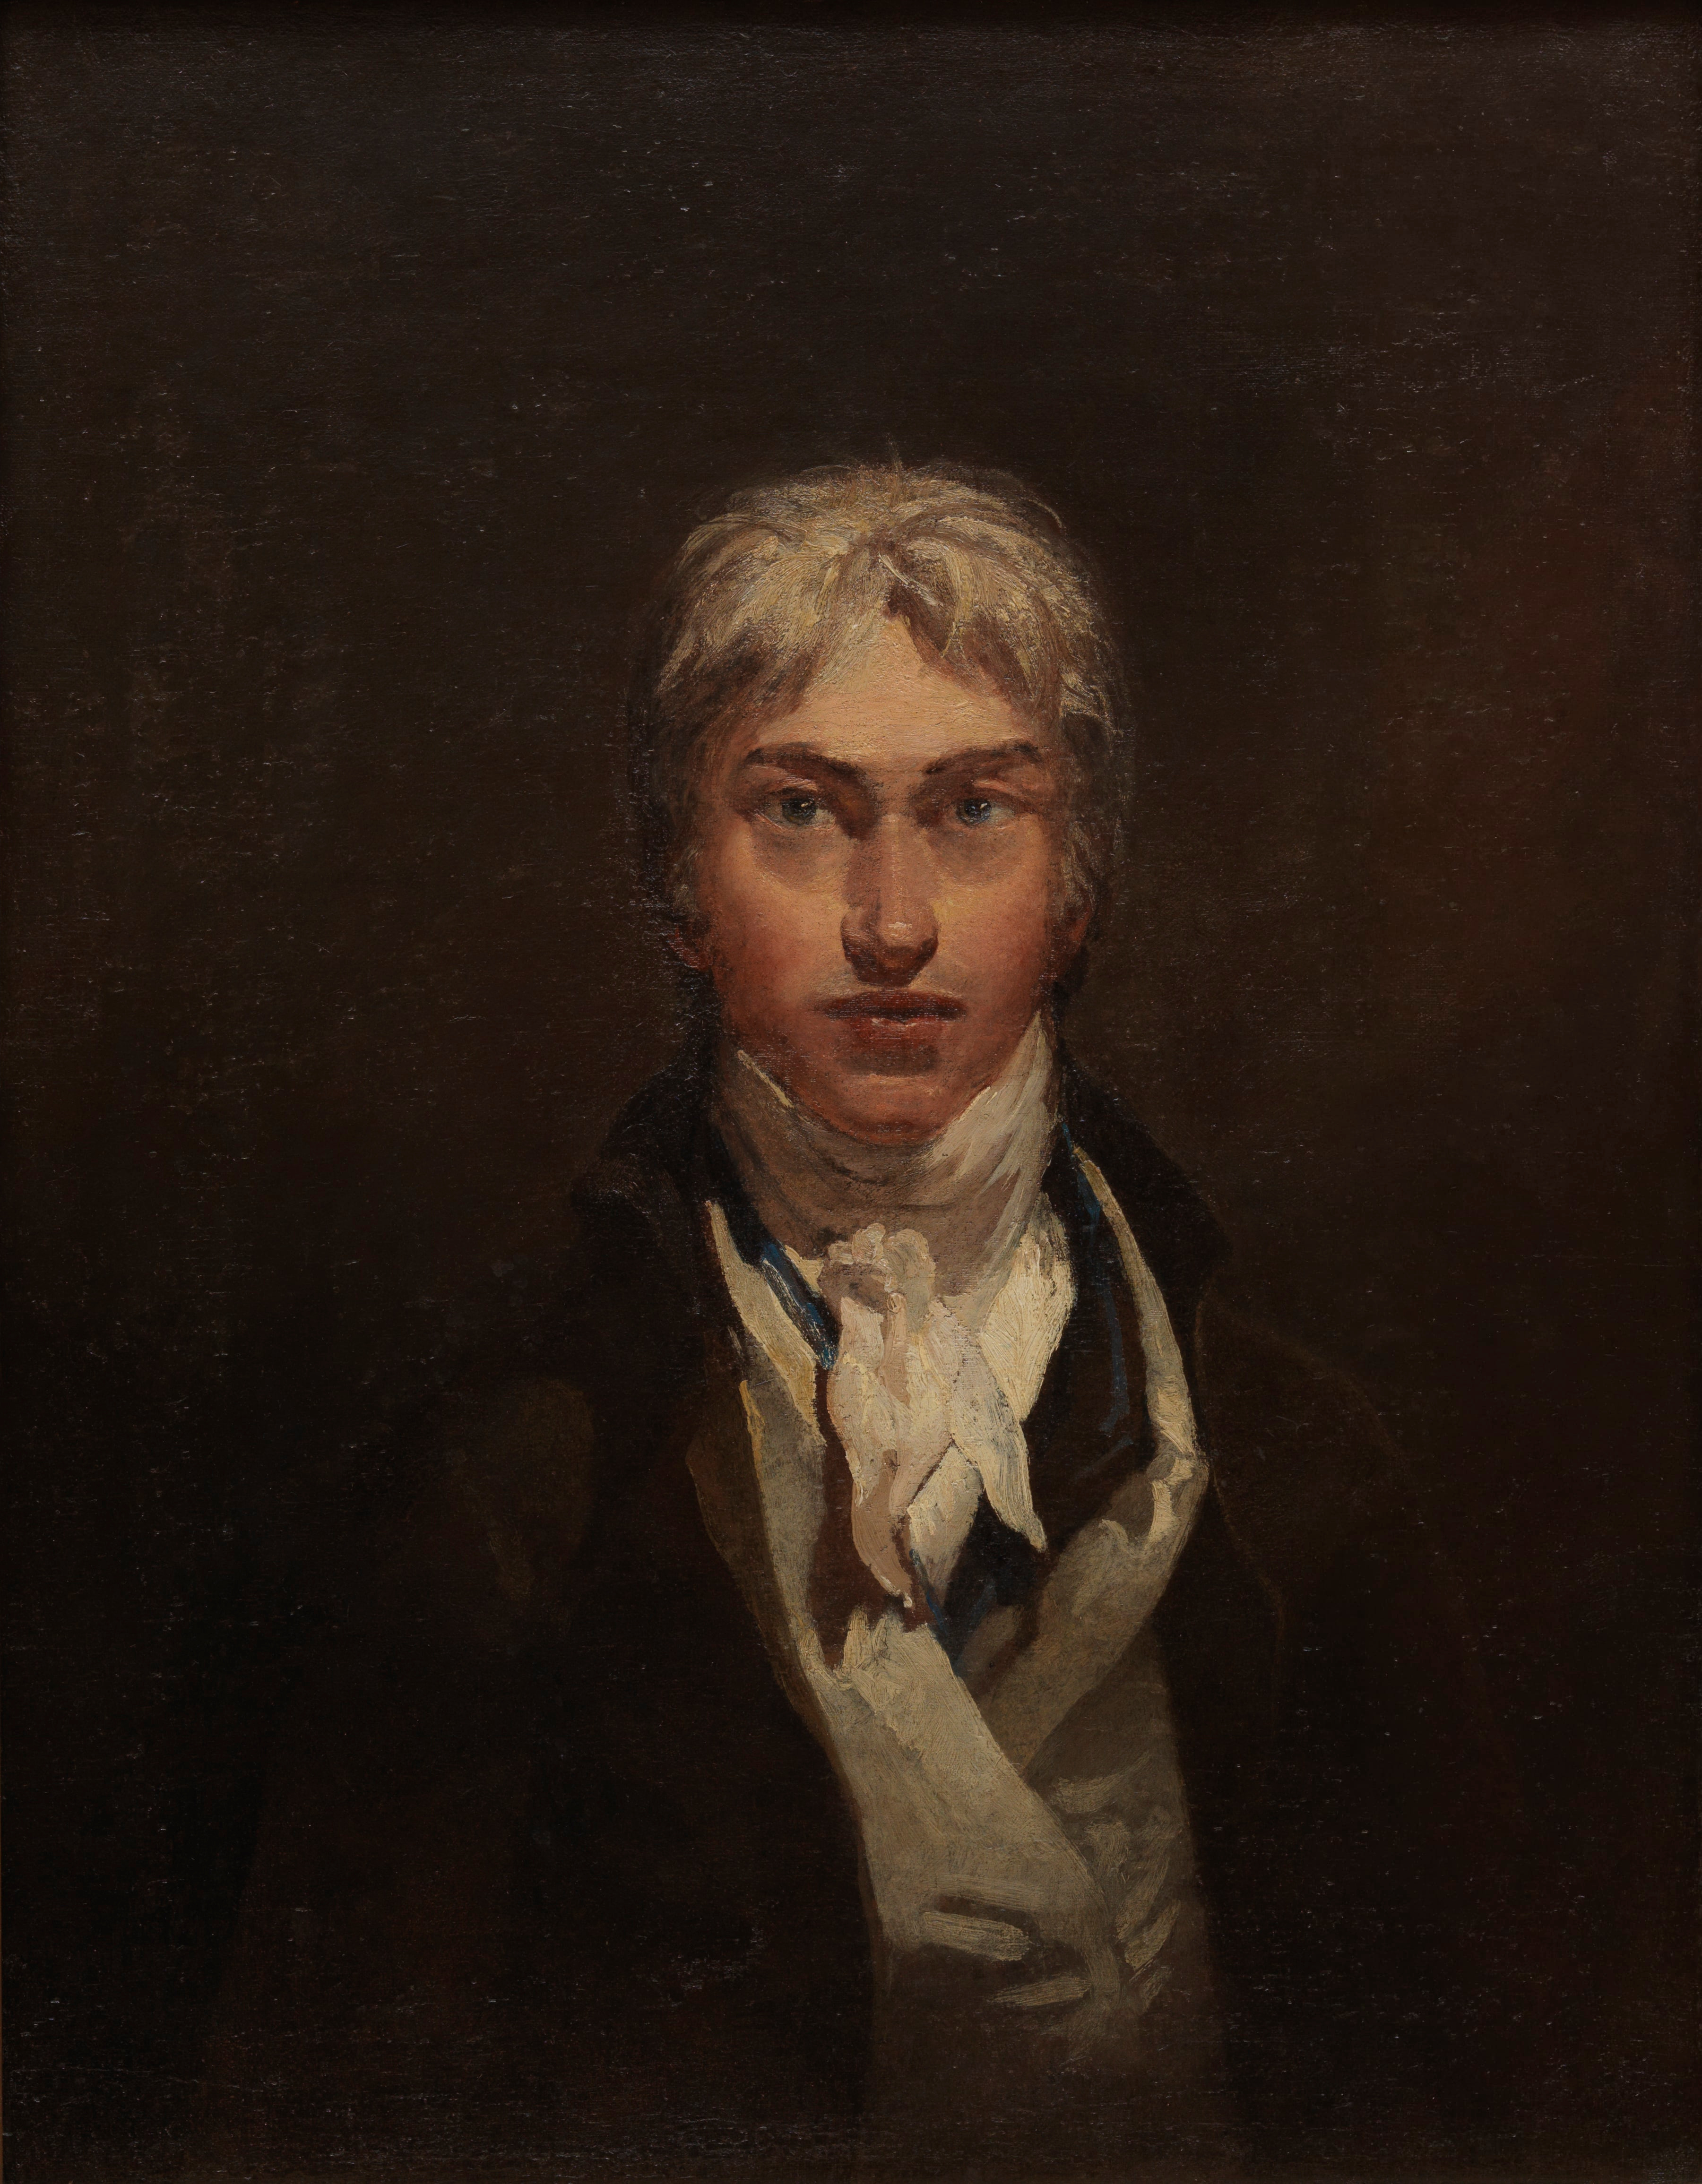 http://upload.wikimedia.org/wikipedia/commons/7/76/Turner_selfportrait.jpg